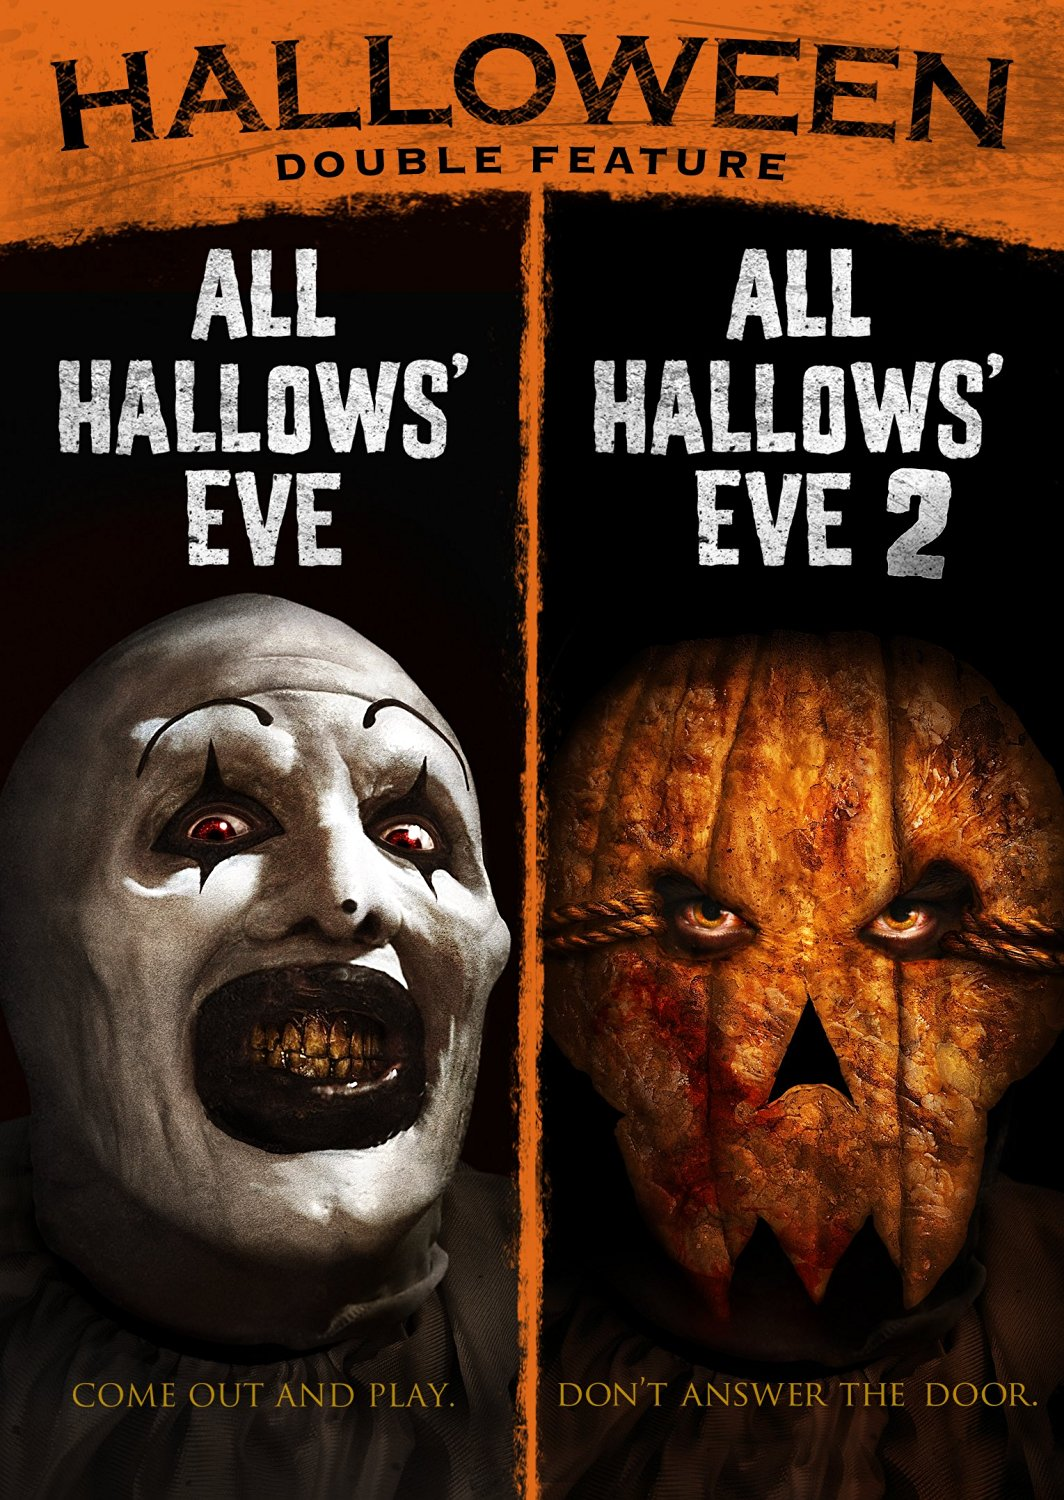 All Hallows Staining: Latest Horror Blu-Rays And DVDs In The USA: September 13th